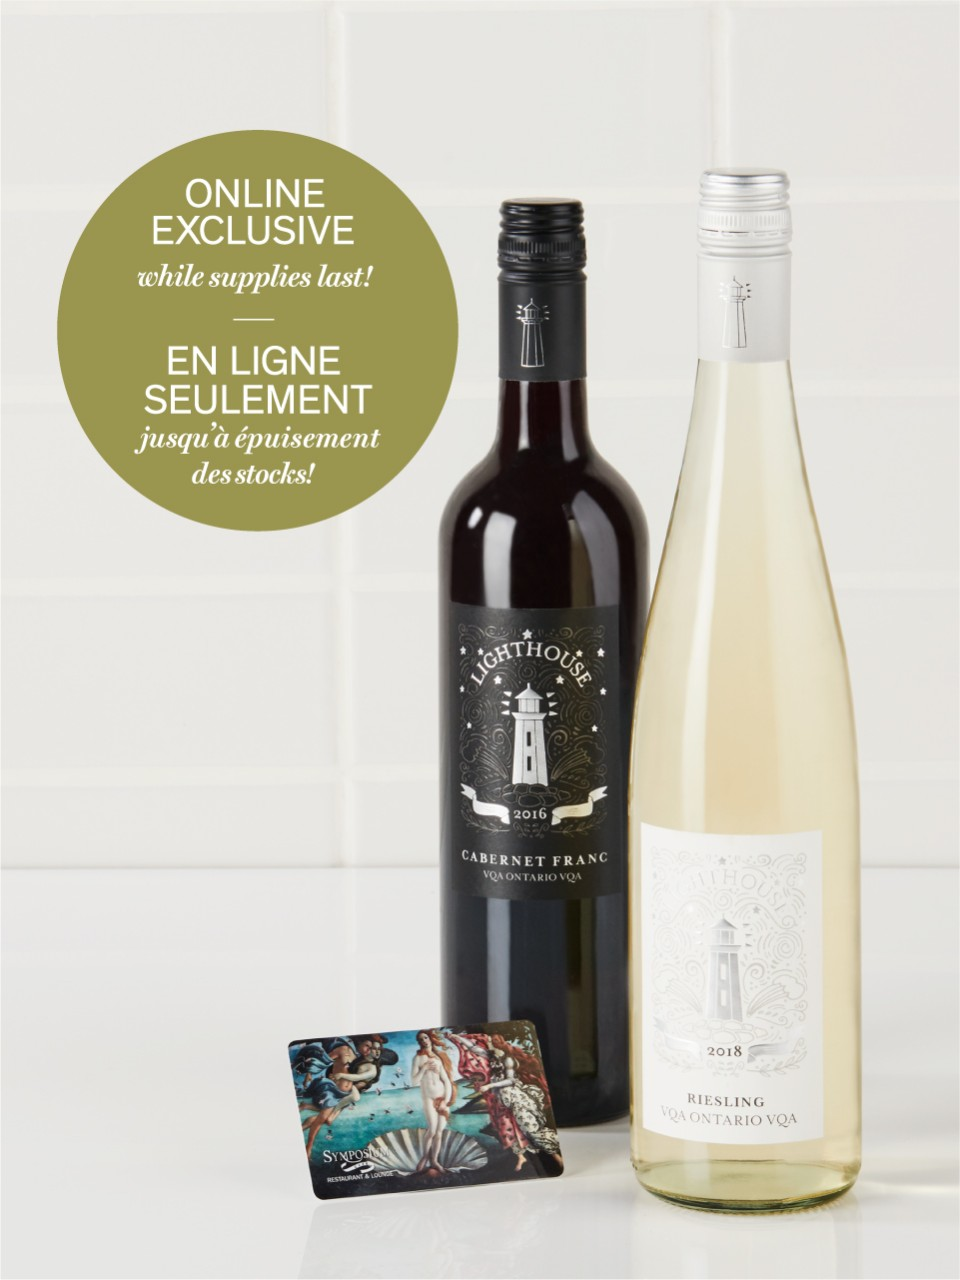 Image for Pelee Island Lighthouse Wine + Symposium Gift Offer from LCBO